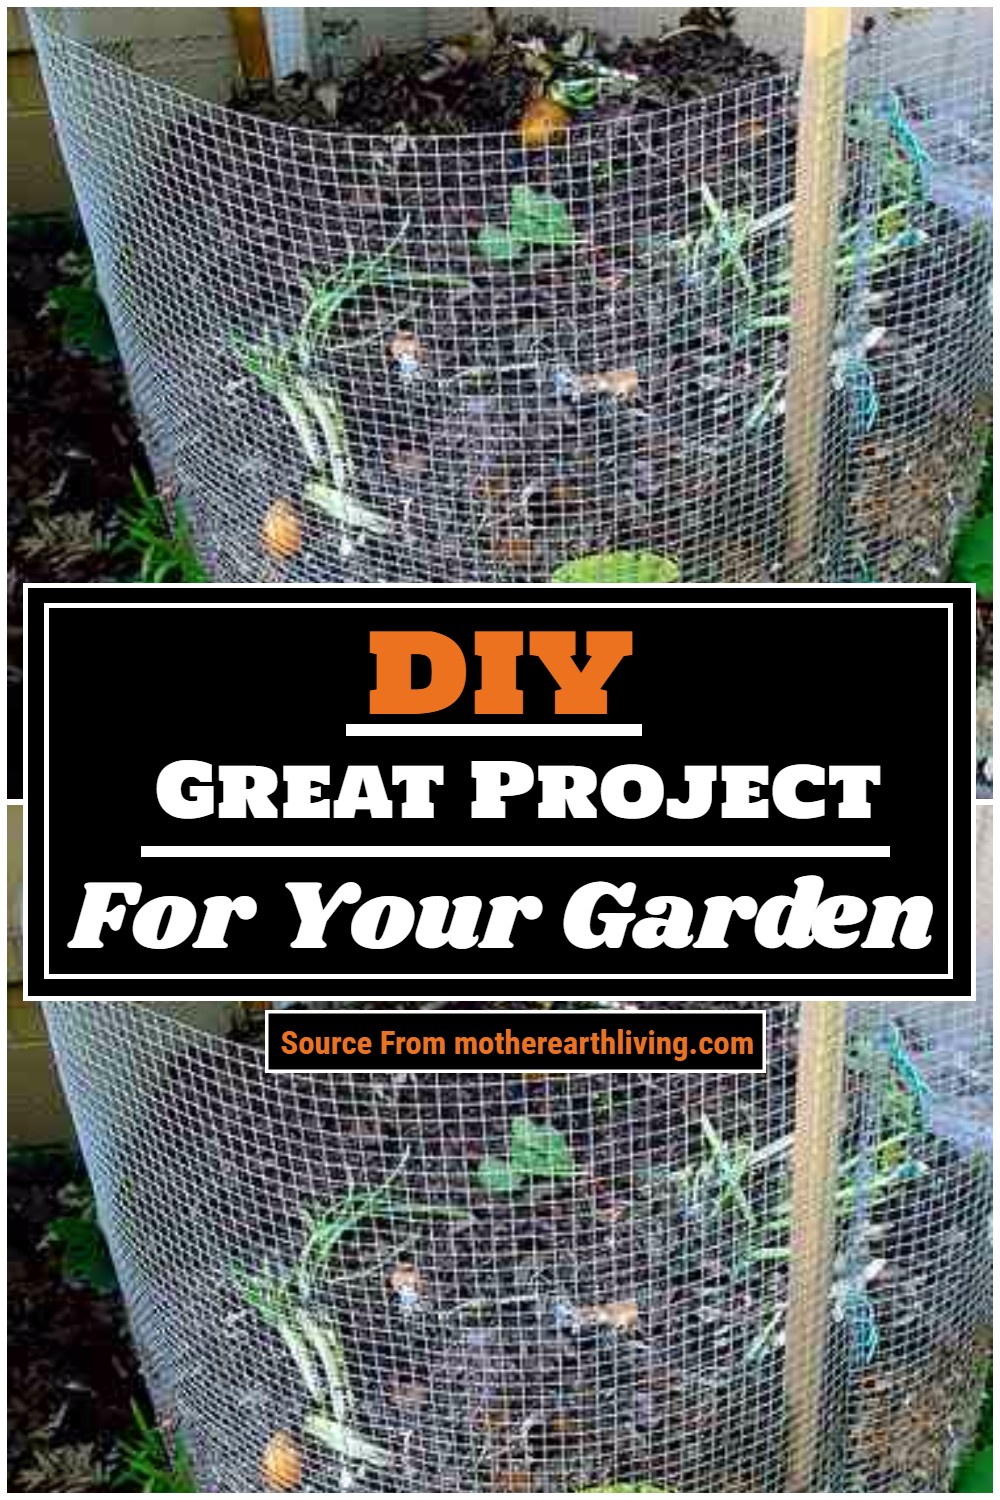 DIY Great Project For Your Garden